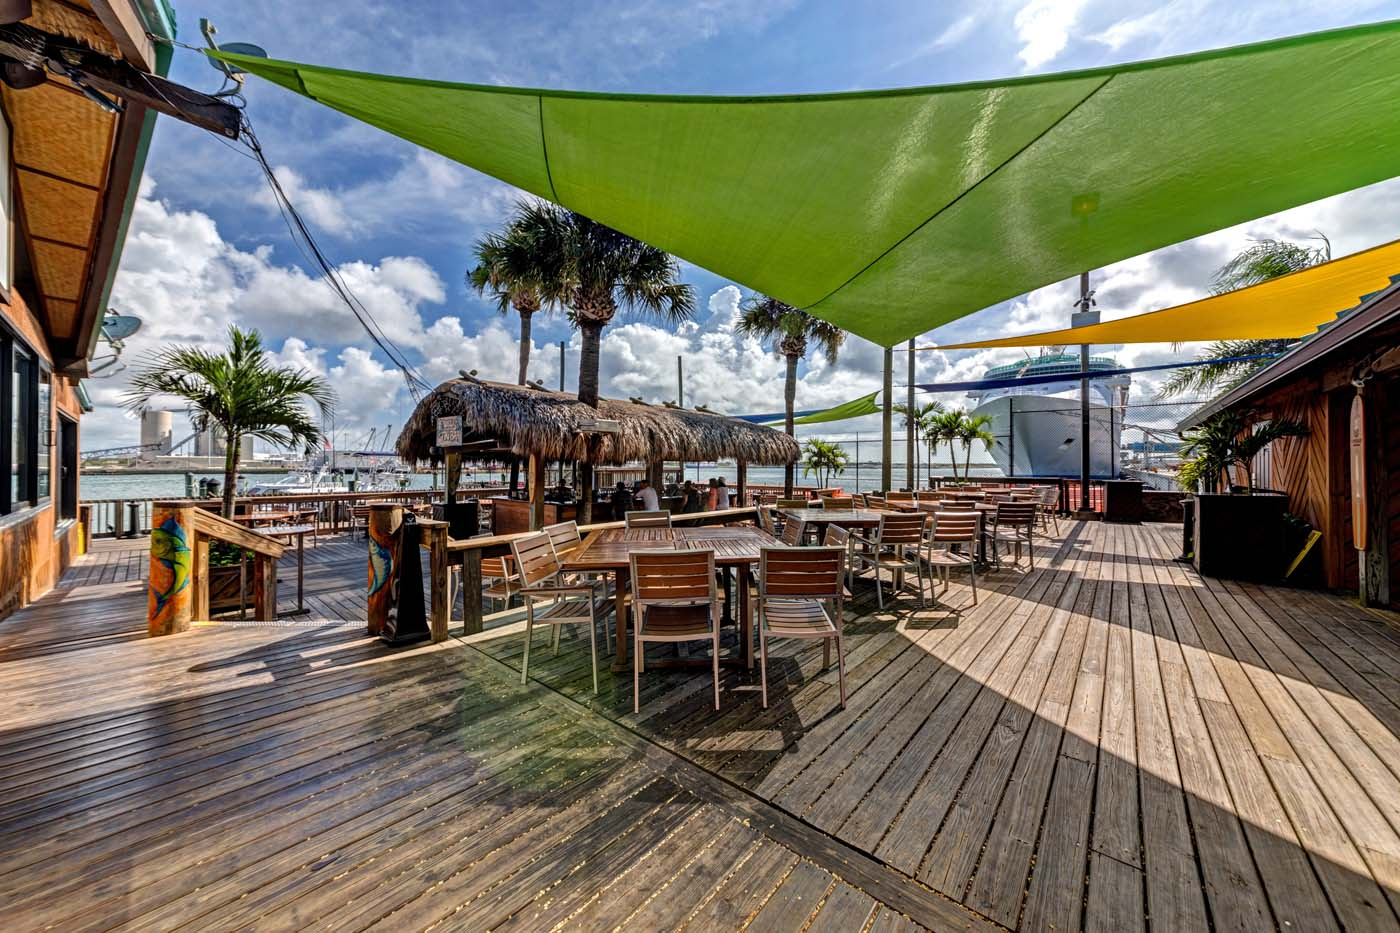 Best Waterfront Restaurants Melbourne Fl